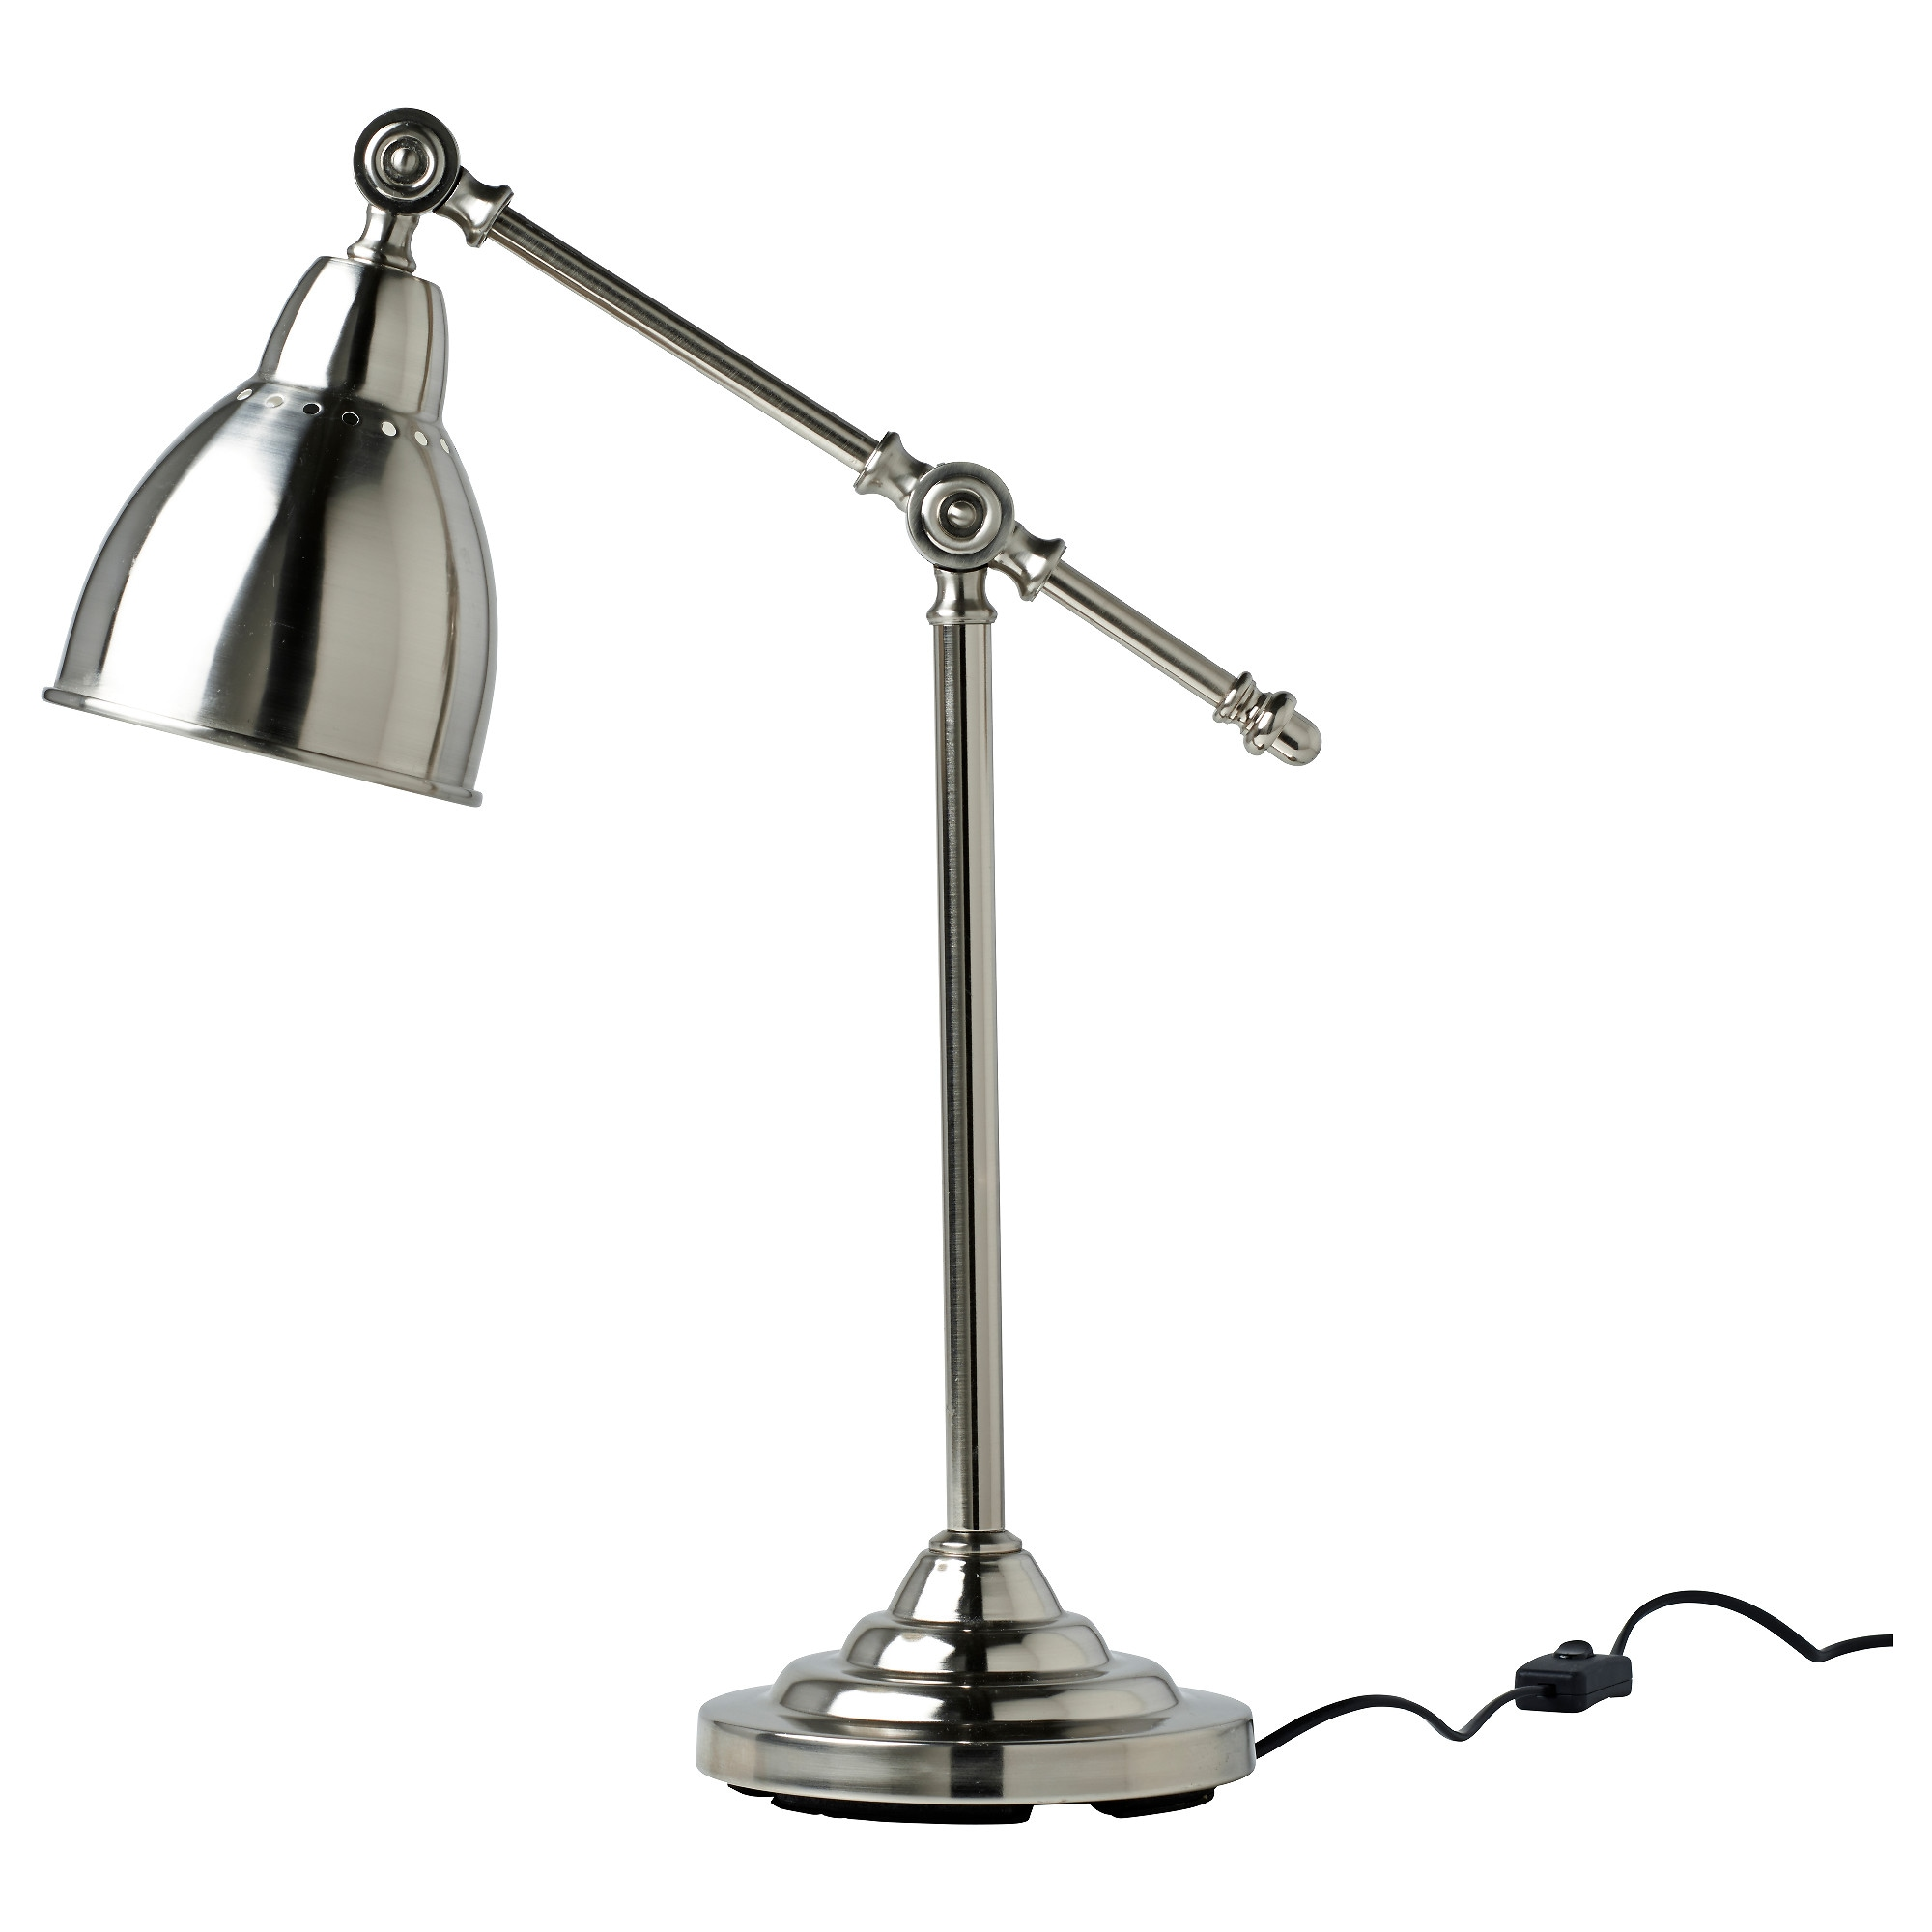 Ikea led desk lamp - Barometer Work Lamp With Led Bulb Nickel Plated Height 17 Base Diameter